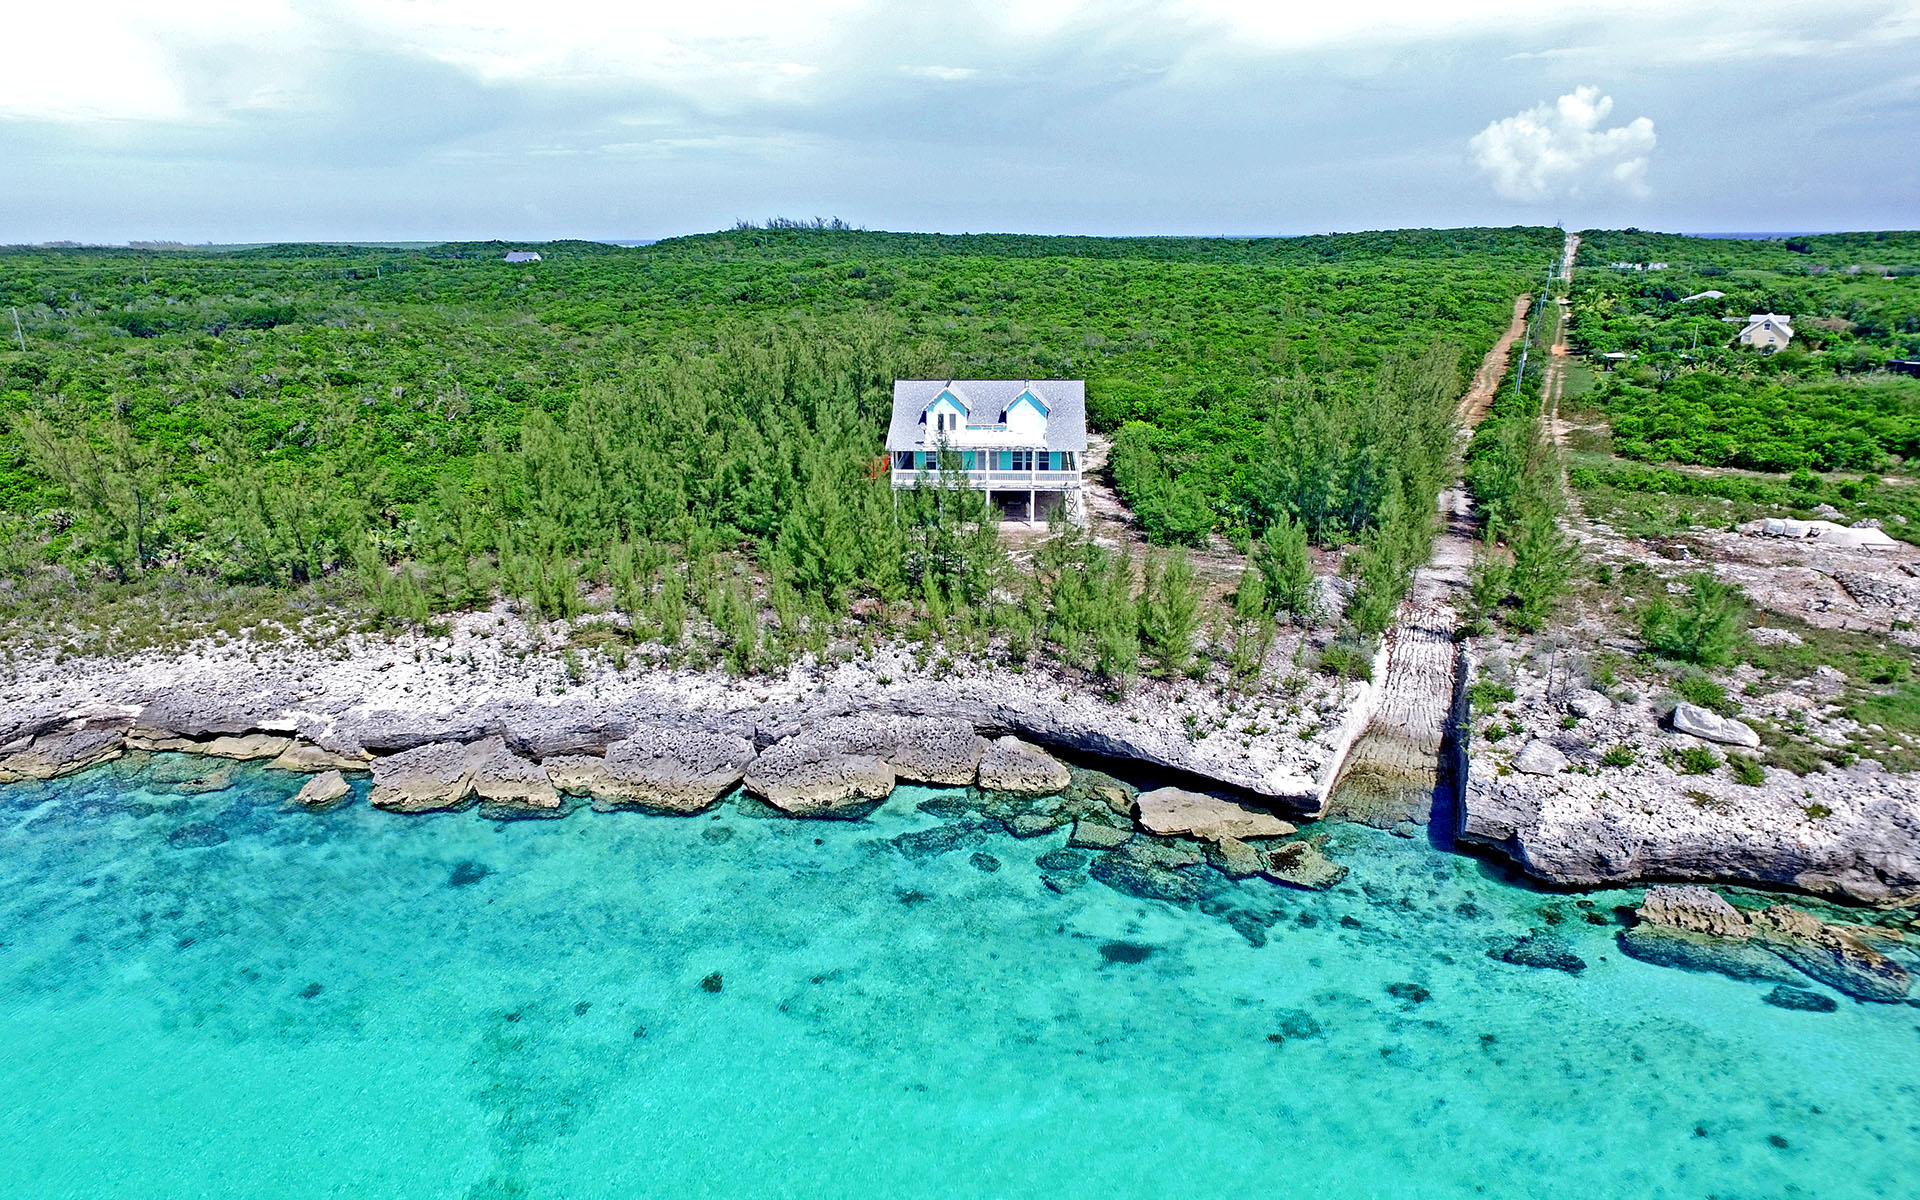 Casa Unifamiliar por un Venta en Luna Sea, Waterfront Island Home, Savannah Sound - MLS 28624 Savannah Sound, Eleuthera, Bahamas